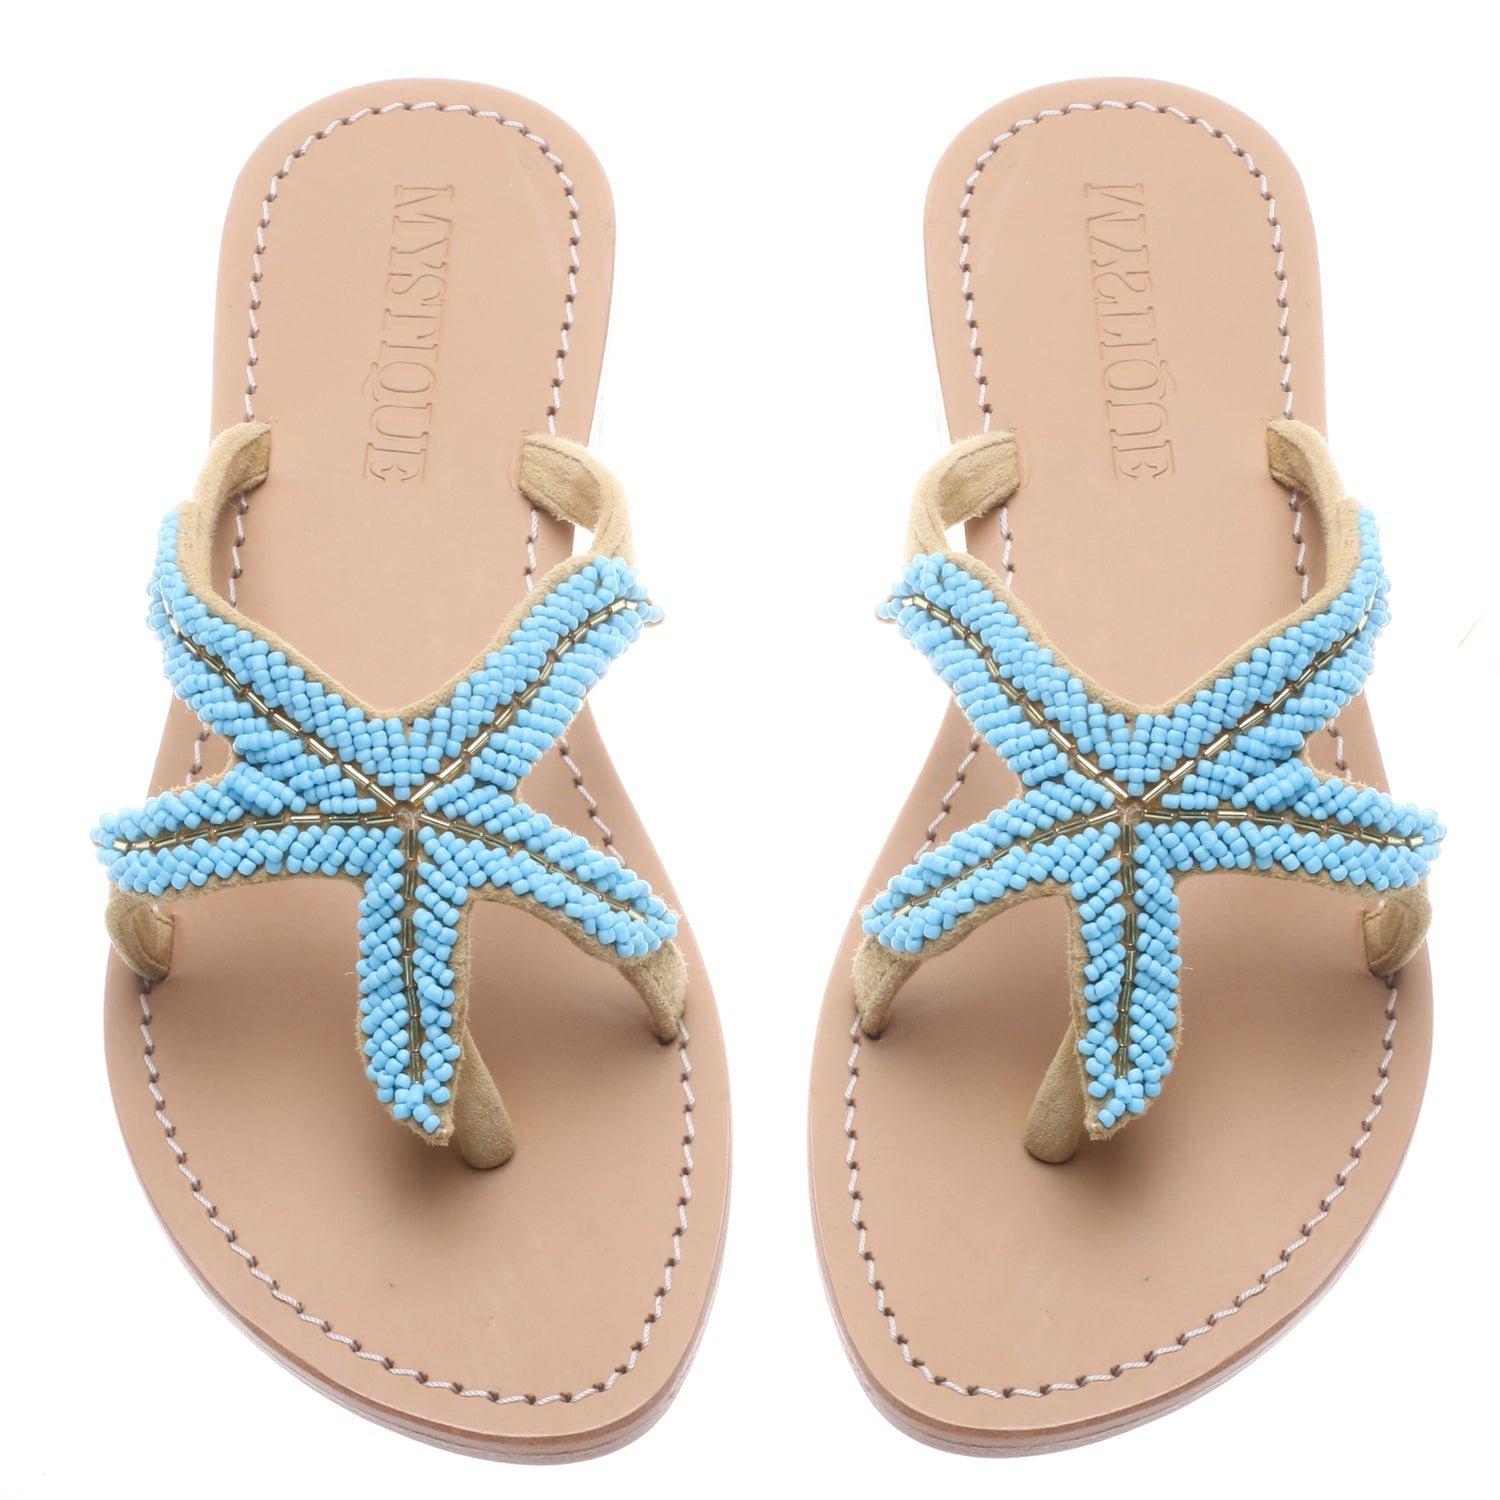 Catalina - Mystique Sandals